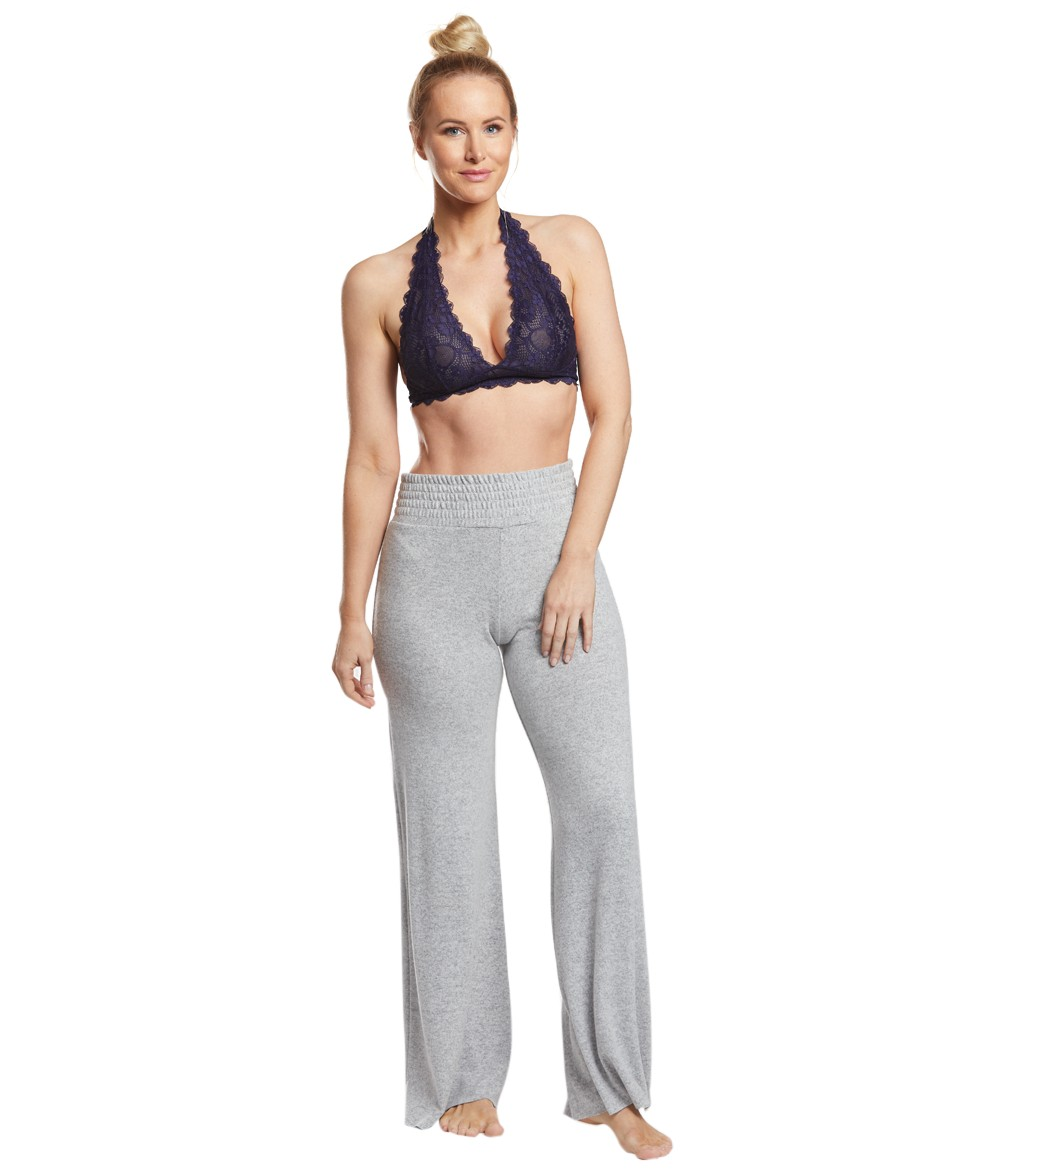 0443cafeb0fbc Free People Galloon Lace Halter Bra at YogaOutlet.com